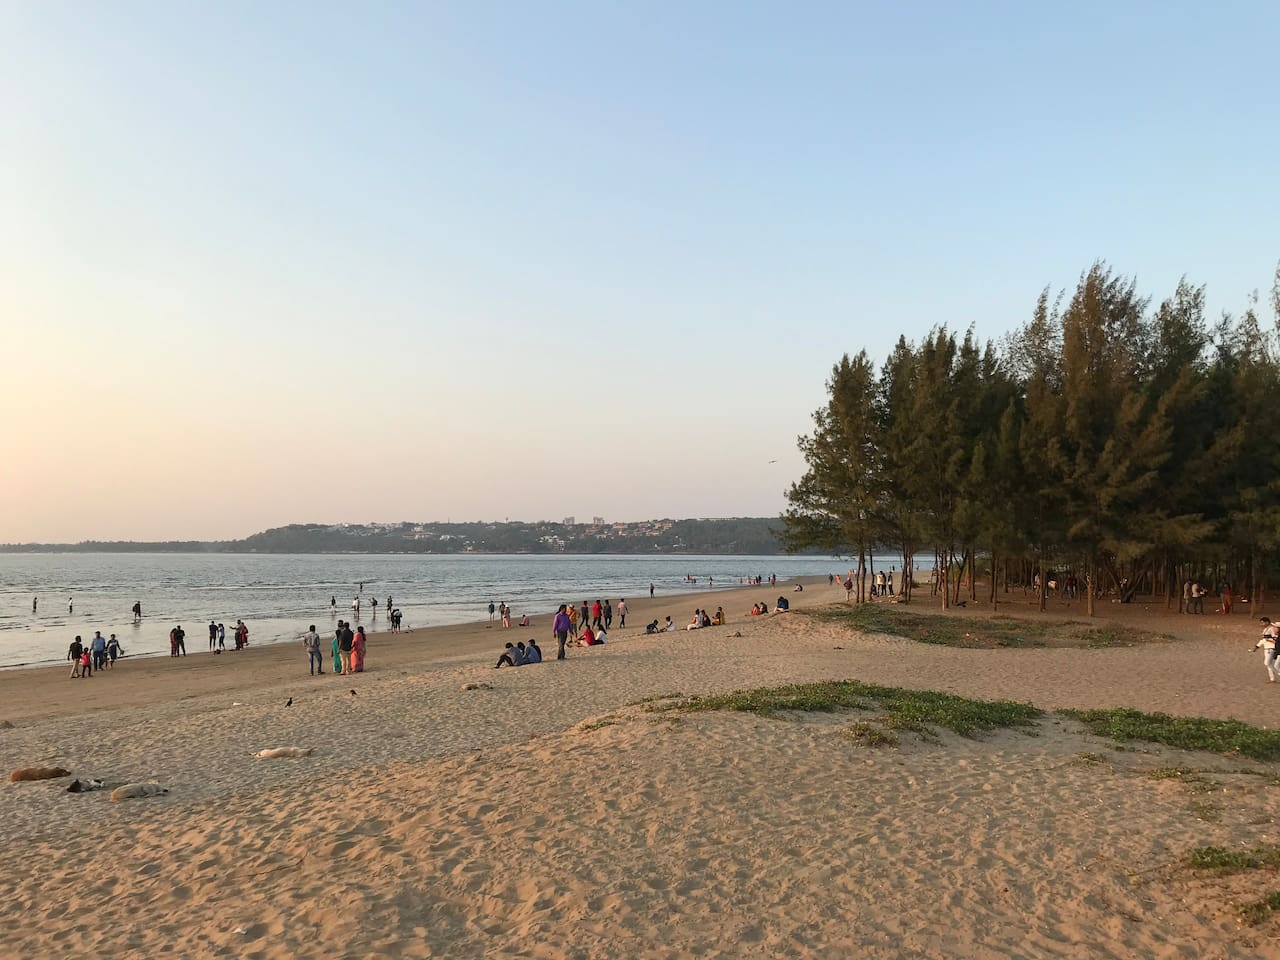 This is  the view of miramar beach which is 2 minutes walking distance from  my place for evening sunset view and lots of fast food stalls to have good time with the family